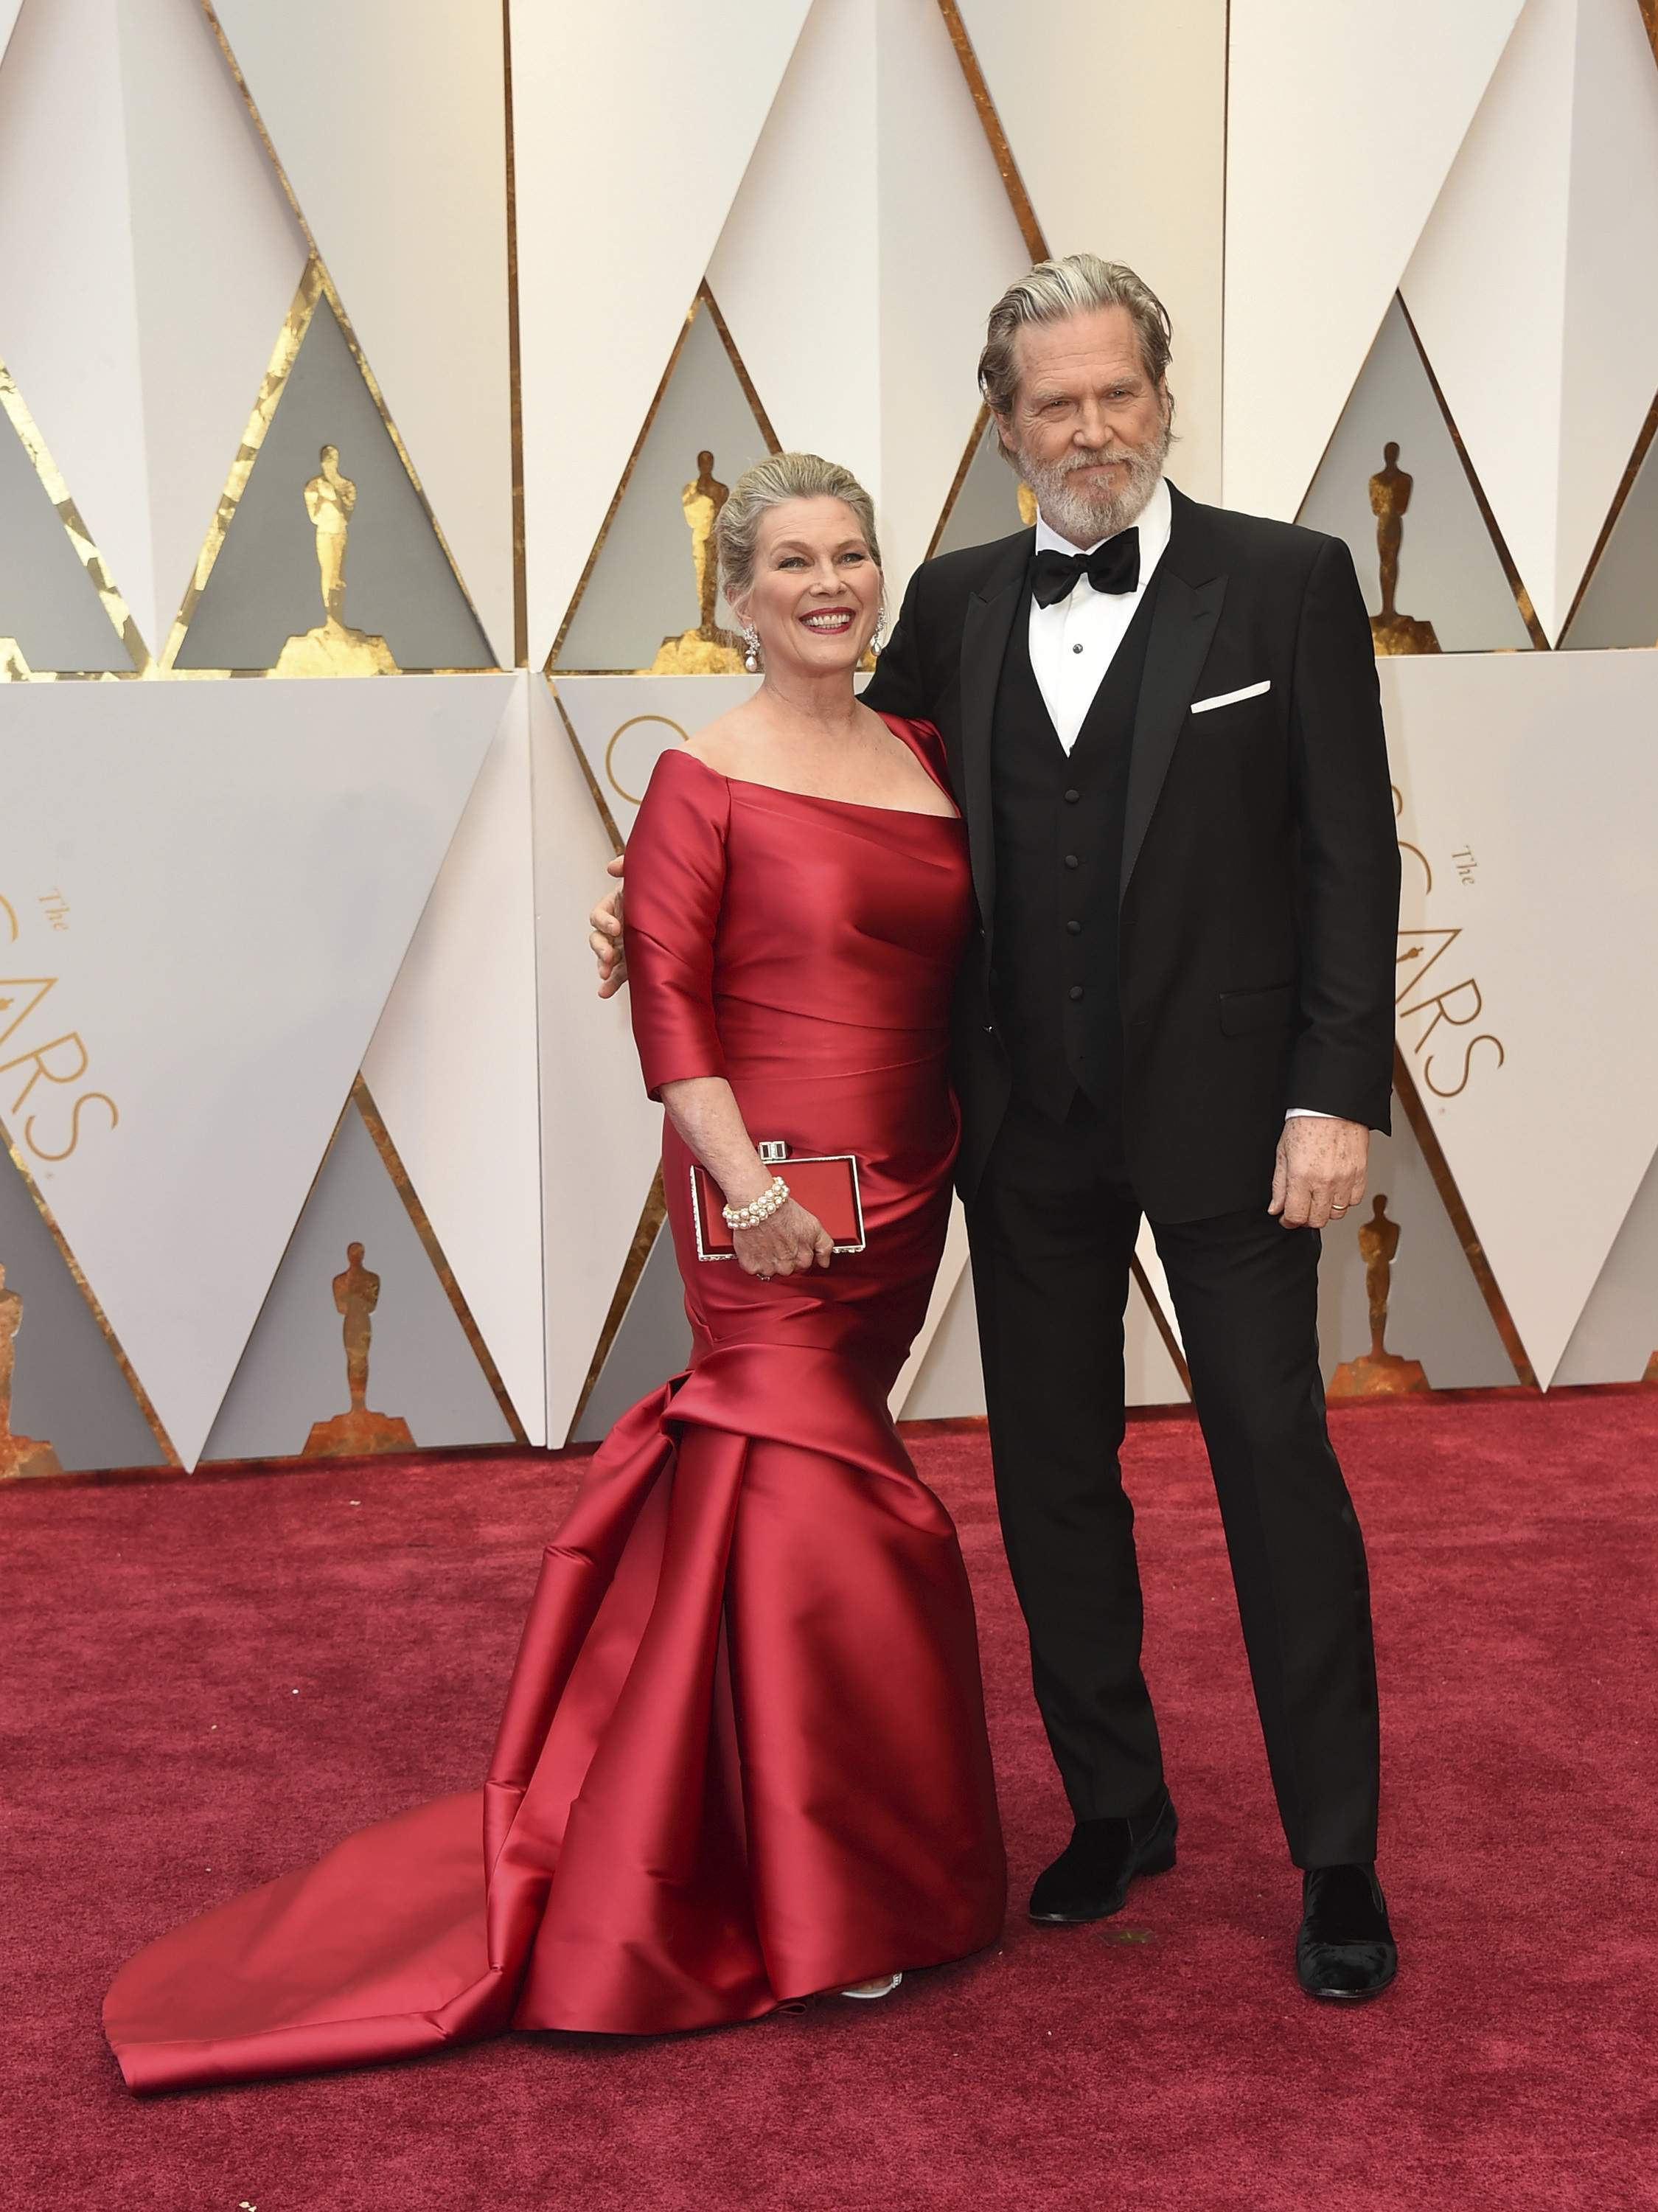 Susan Geston, left, and Jeff Bridges arrive at the Oscars on Sunday, Feb. 26, 2017, at the Dolby Theatre in Los Angeles. THE ASSOCIATED PRESS